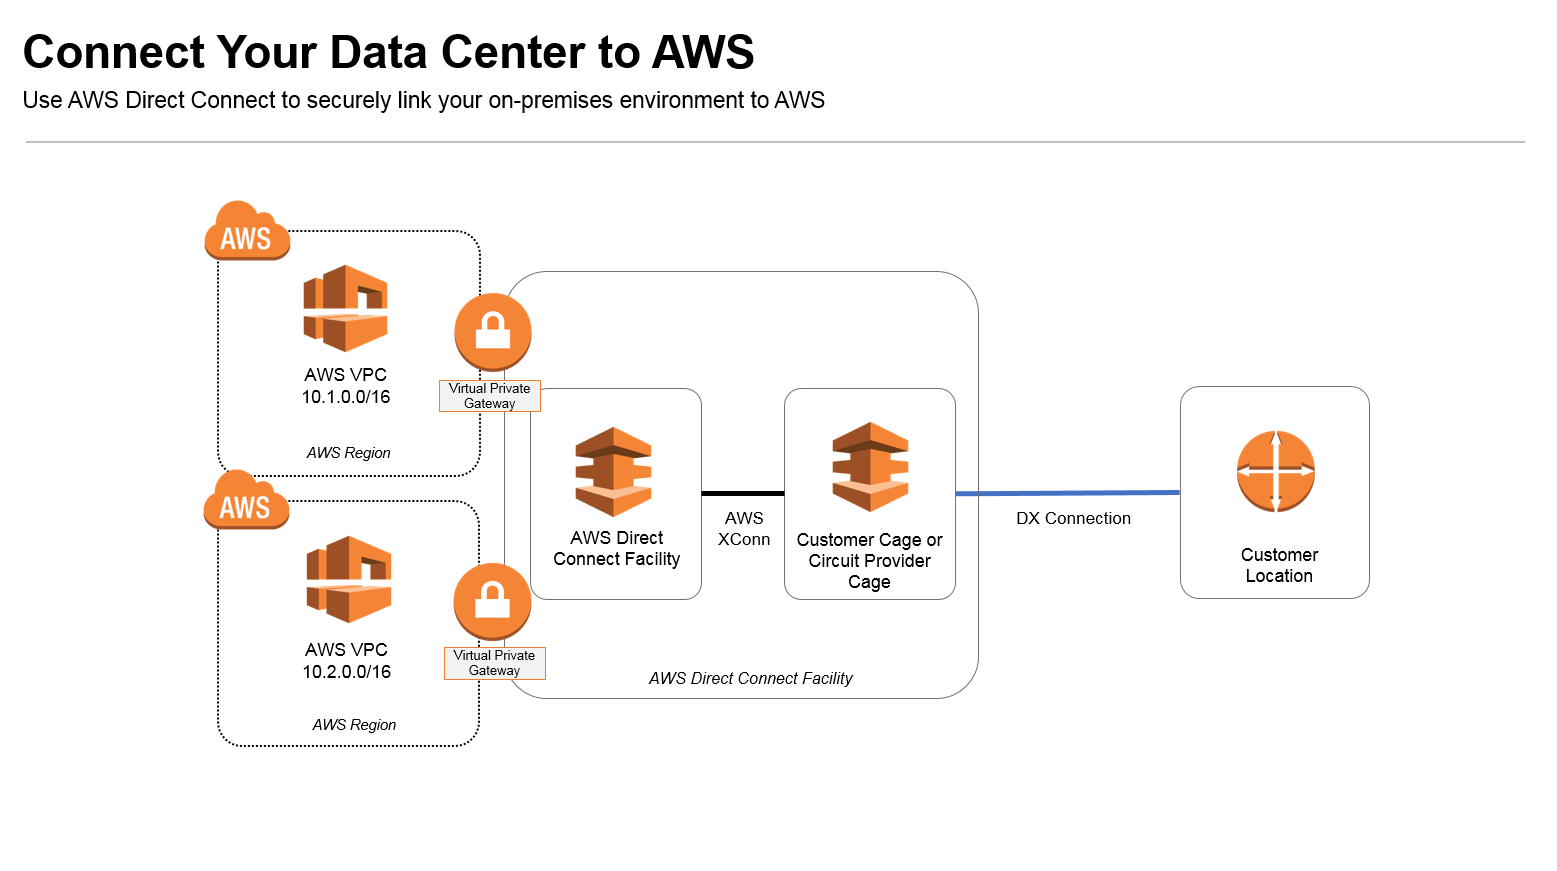 How to Connect Your Data Center to AWS